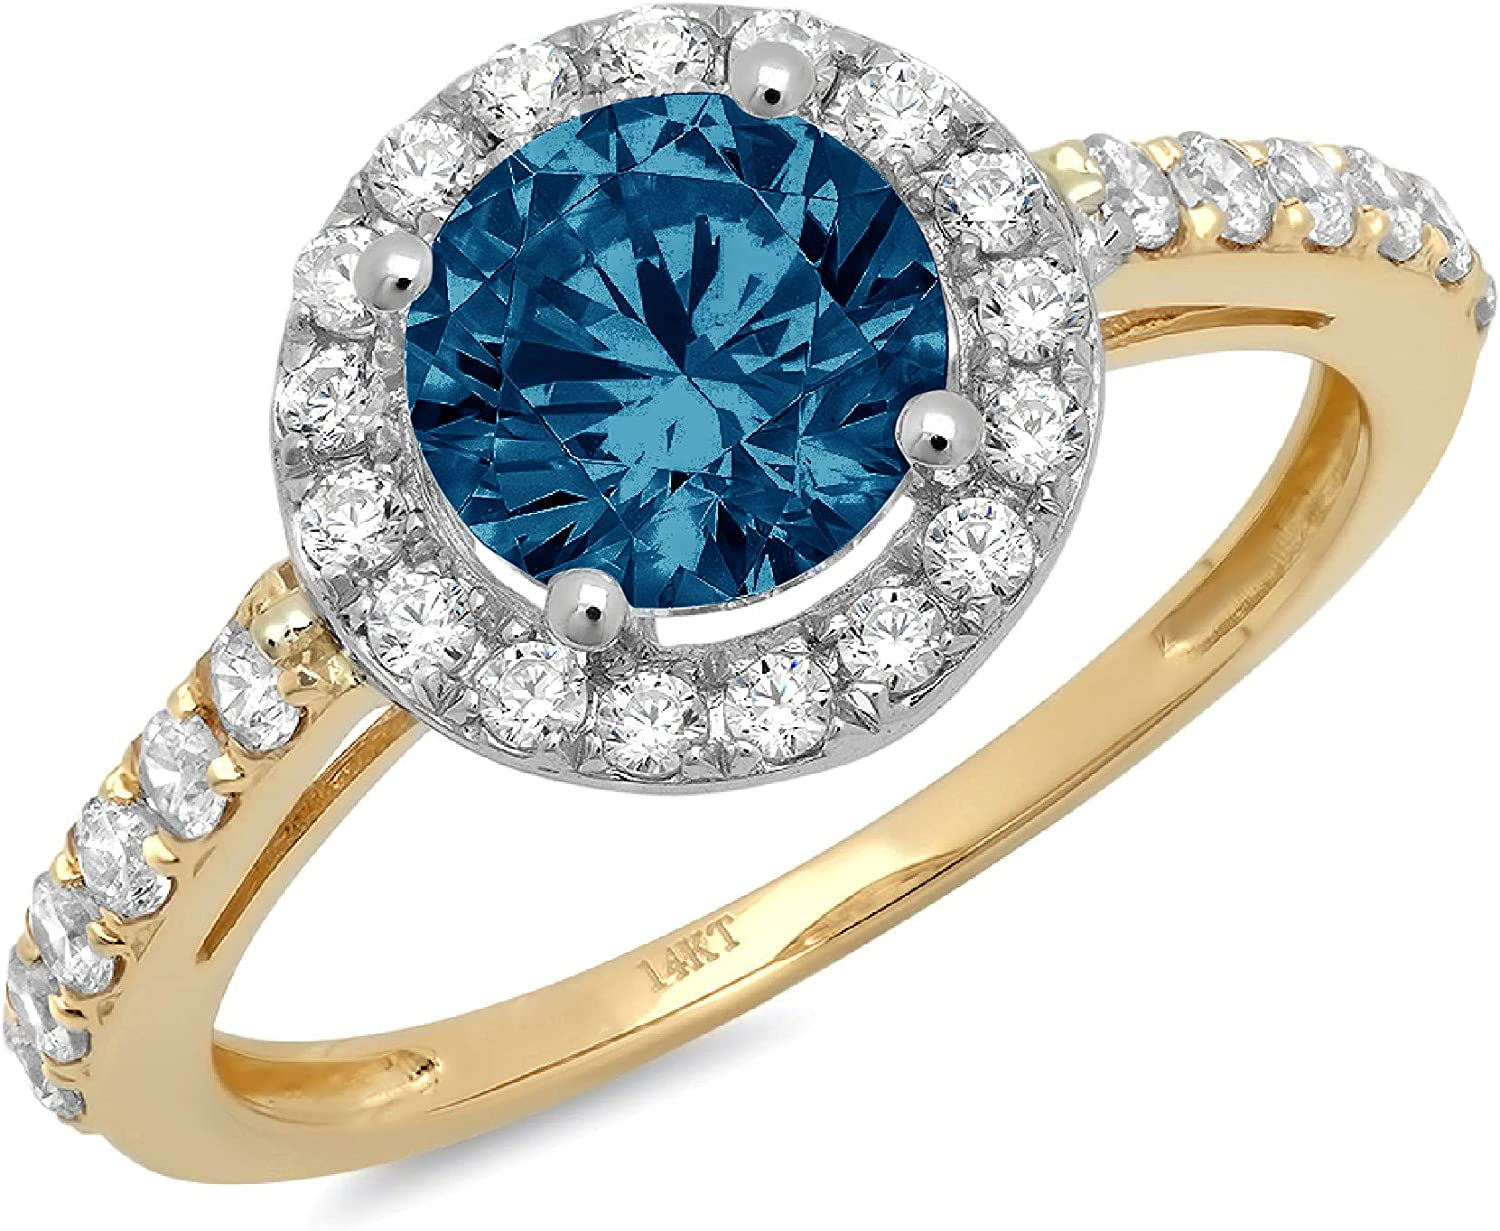 Clara Pucci 2.5 ct Round Cut Solitaire Accent Halo Stunning Genuine Flawless Natural London Blue Topaz Gem Designer Modern Statement Ring Solid 18K Yellow & White Gold